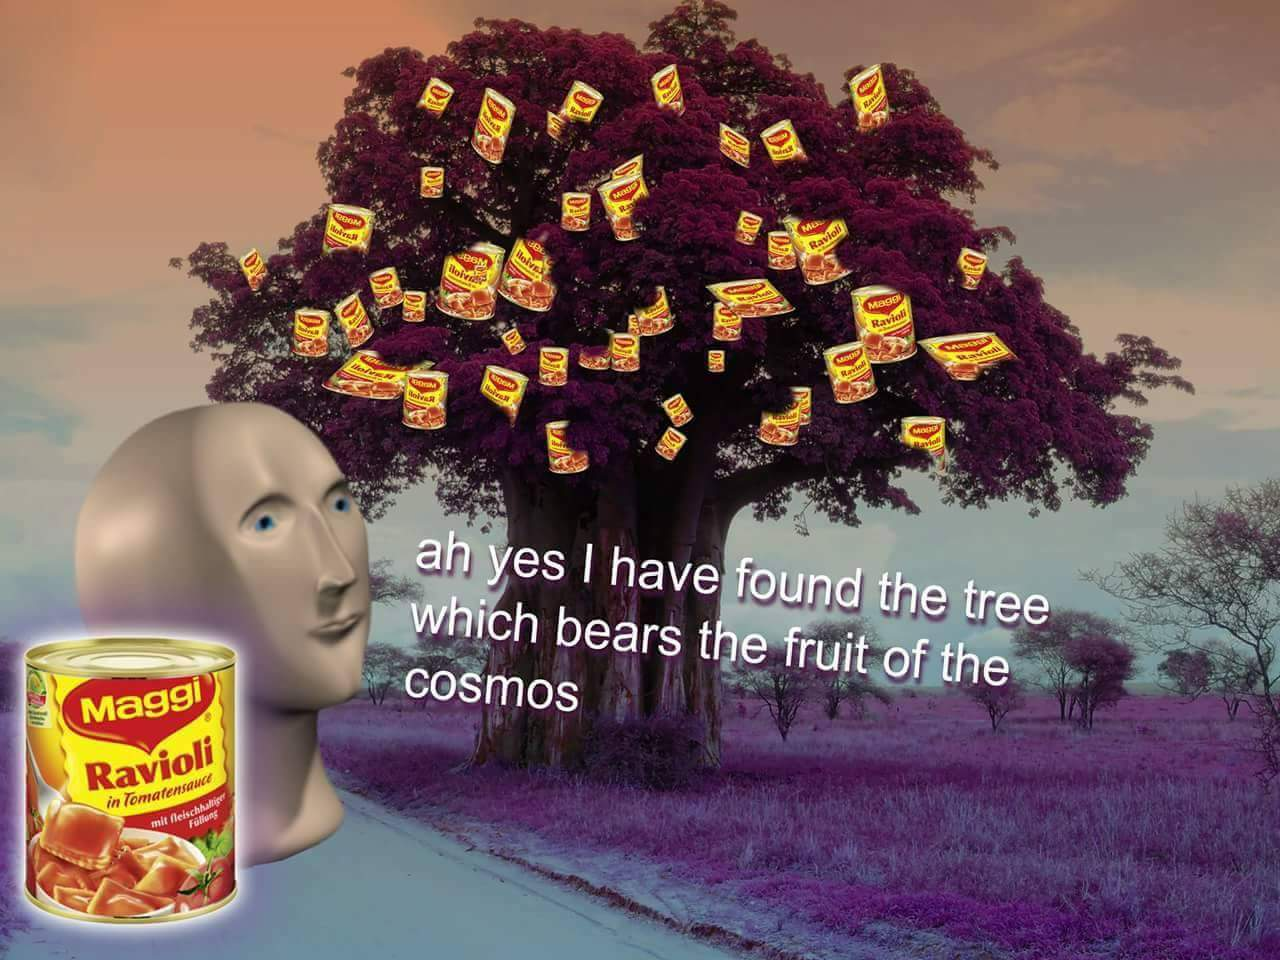 Ah Yes I Have Found The Tree Which Bears The Fruit Of The Cosmos